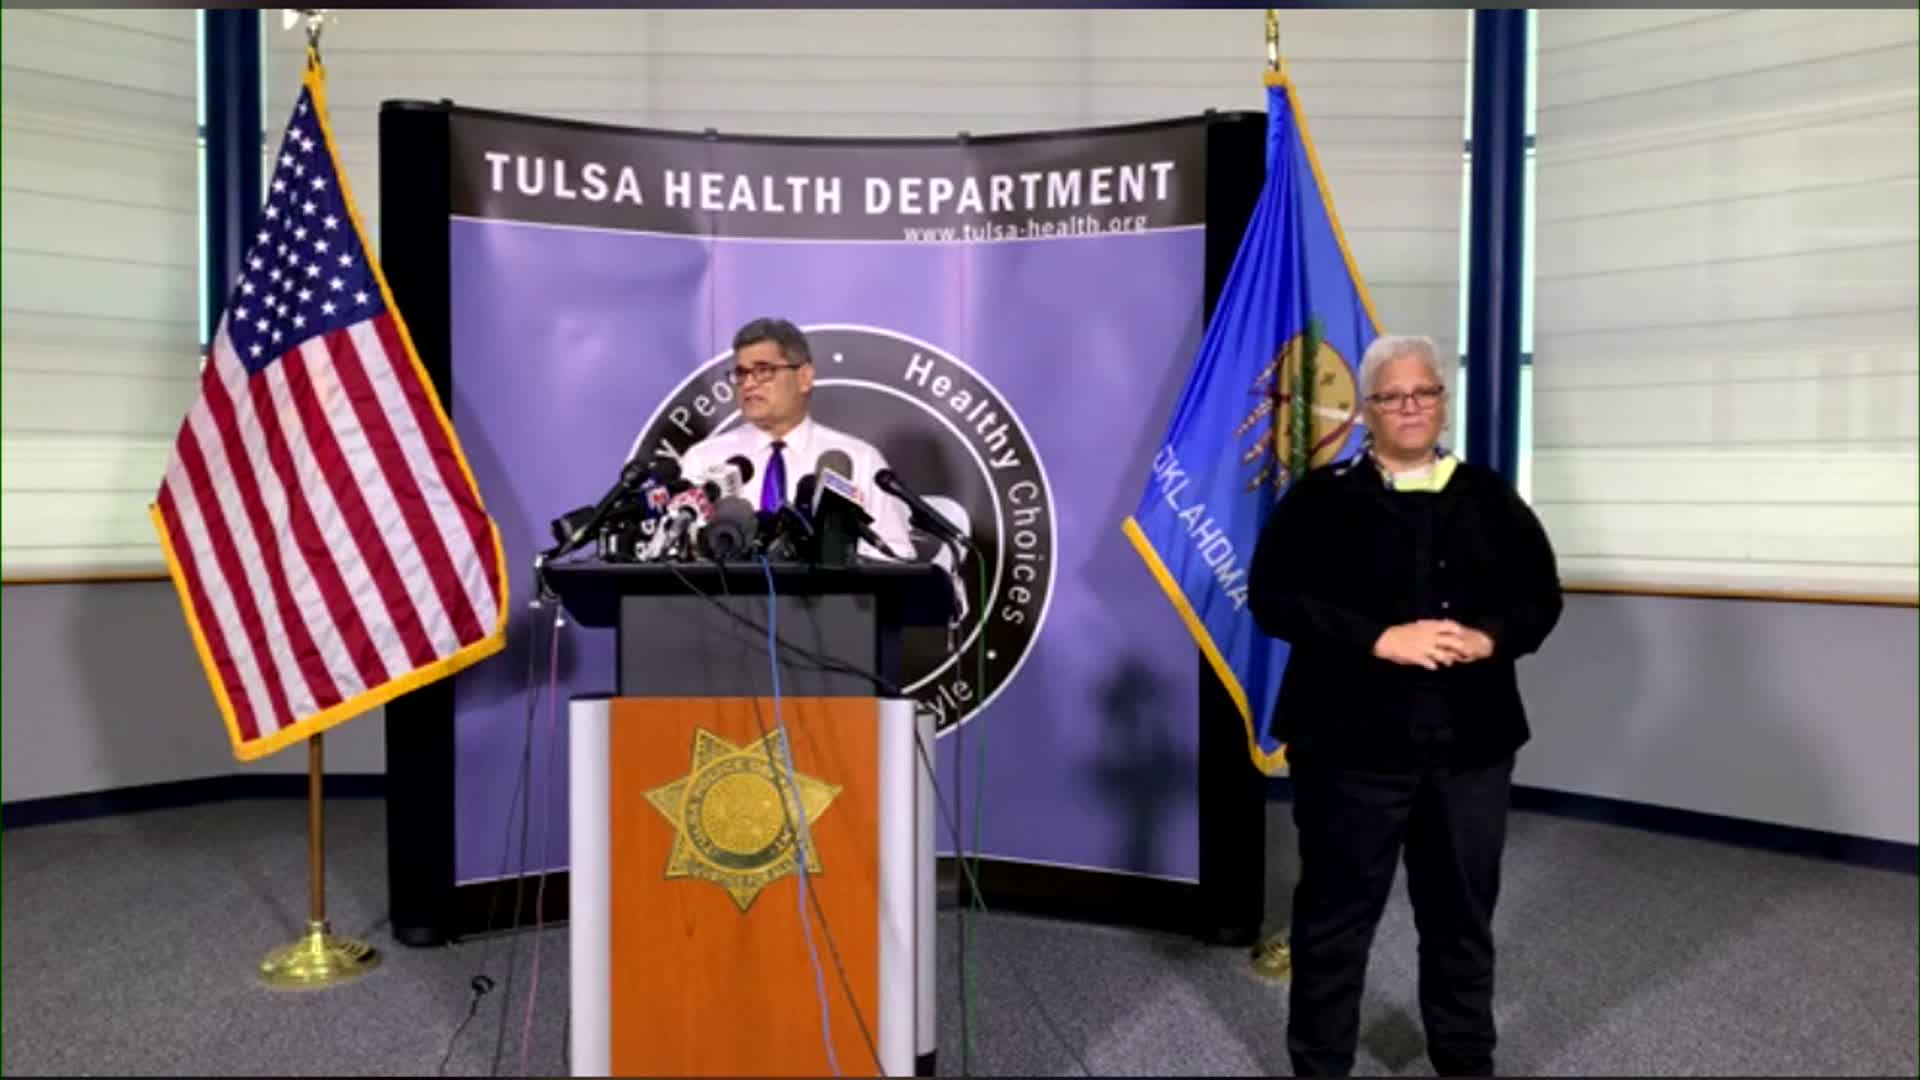 Director of the Tulsa Health Department Dr. Bruce Dart speaks at a news presser.